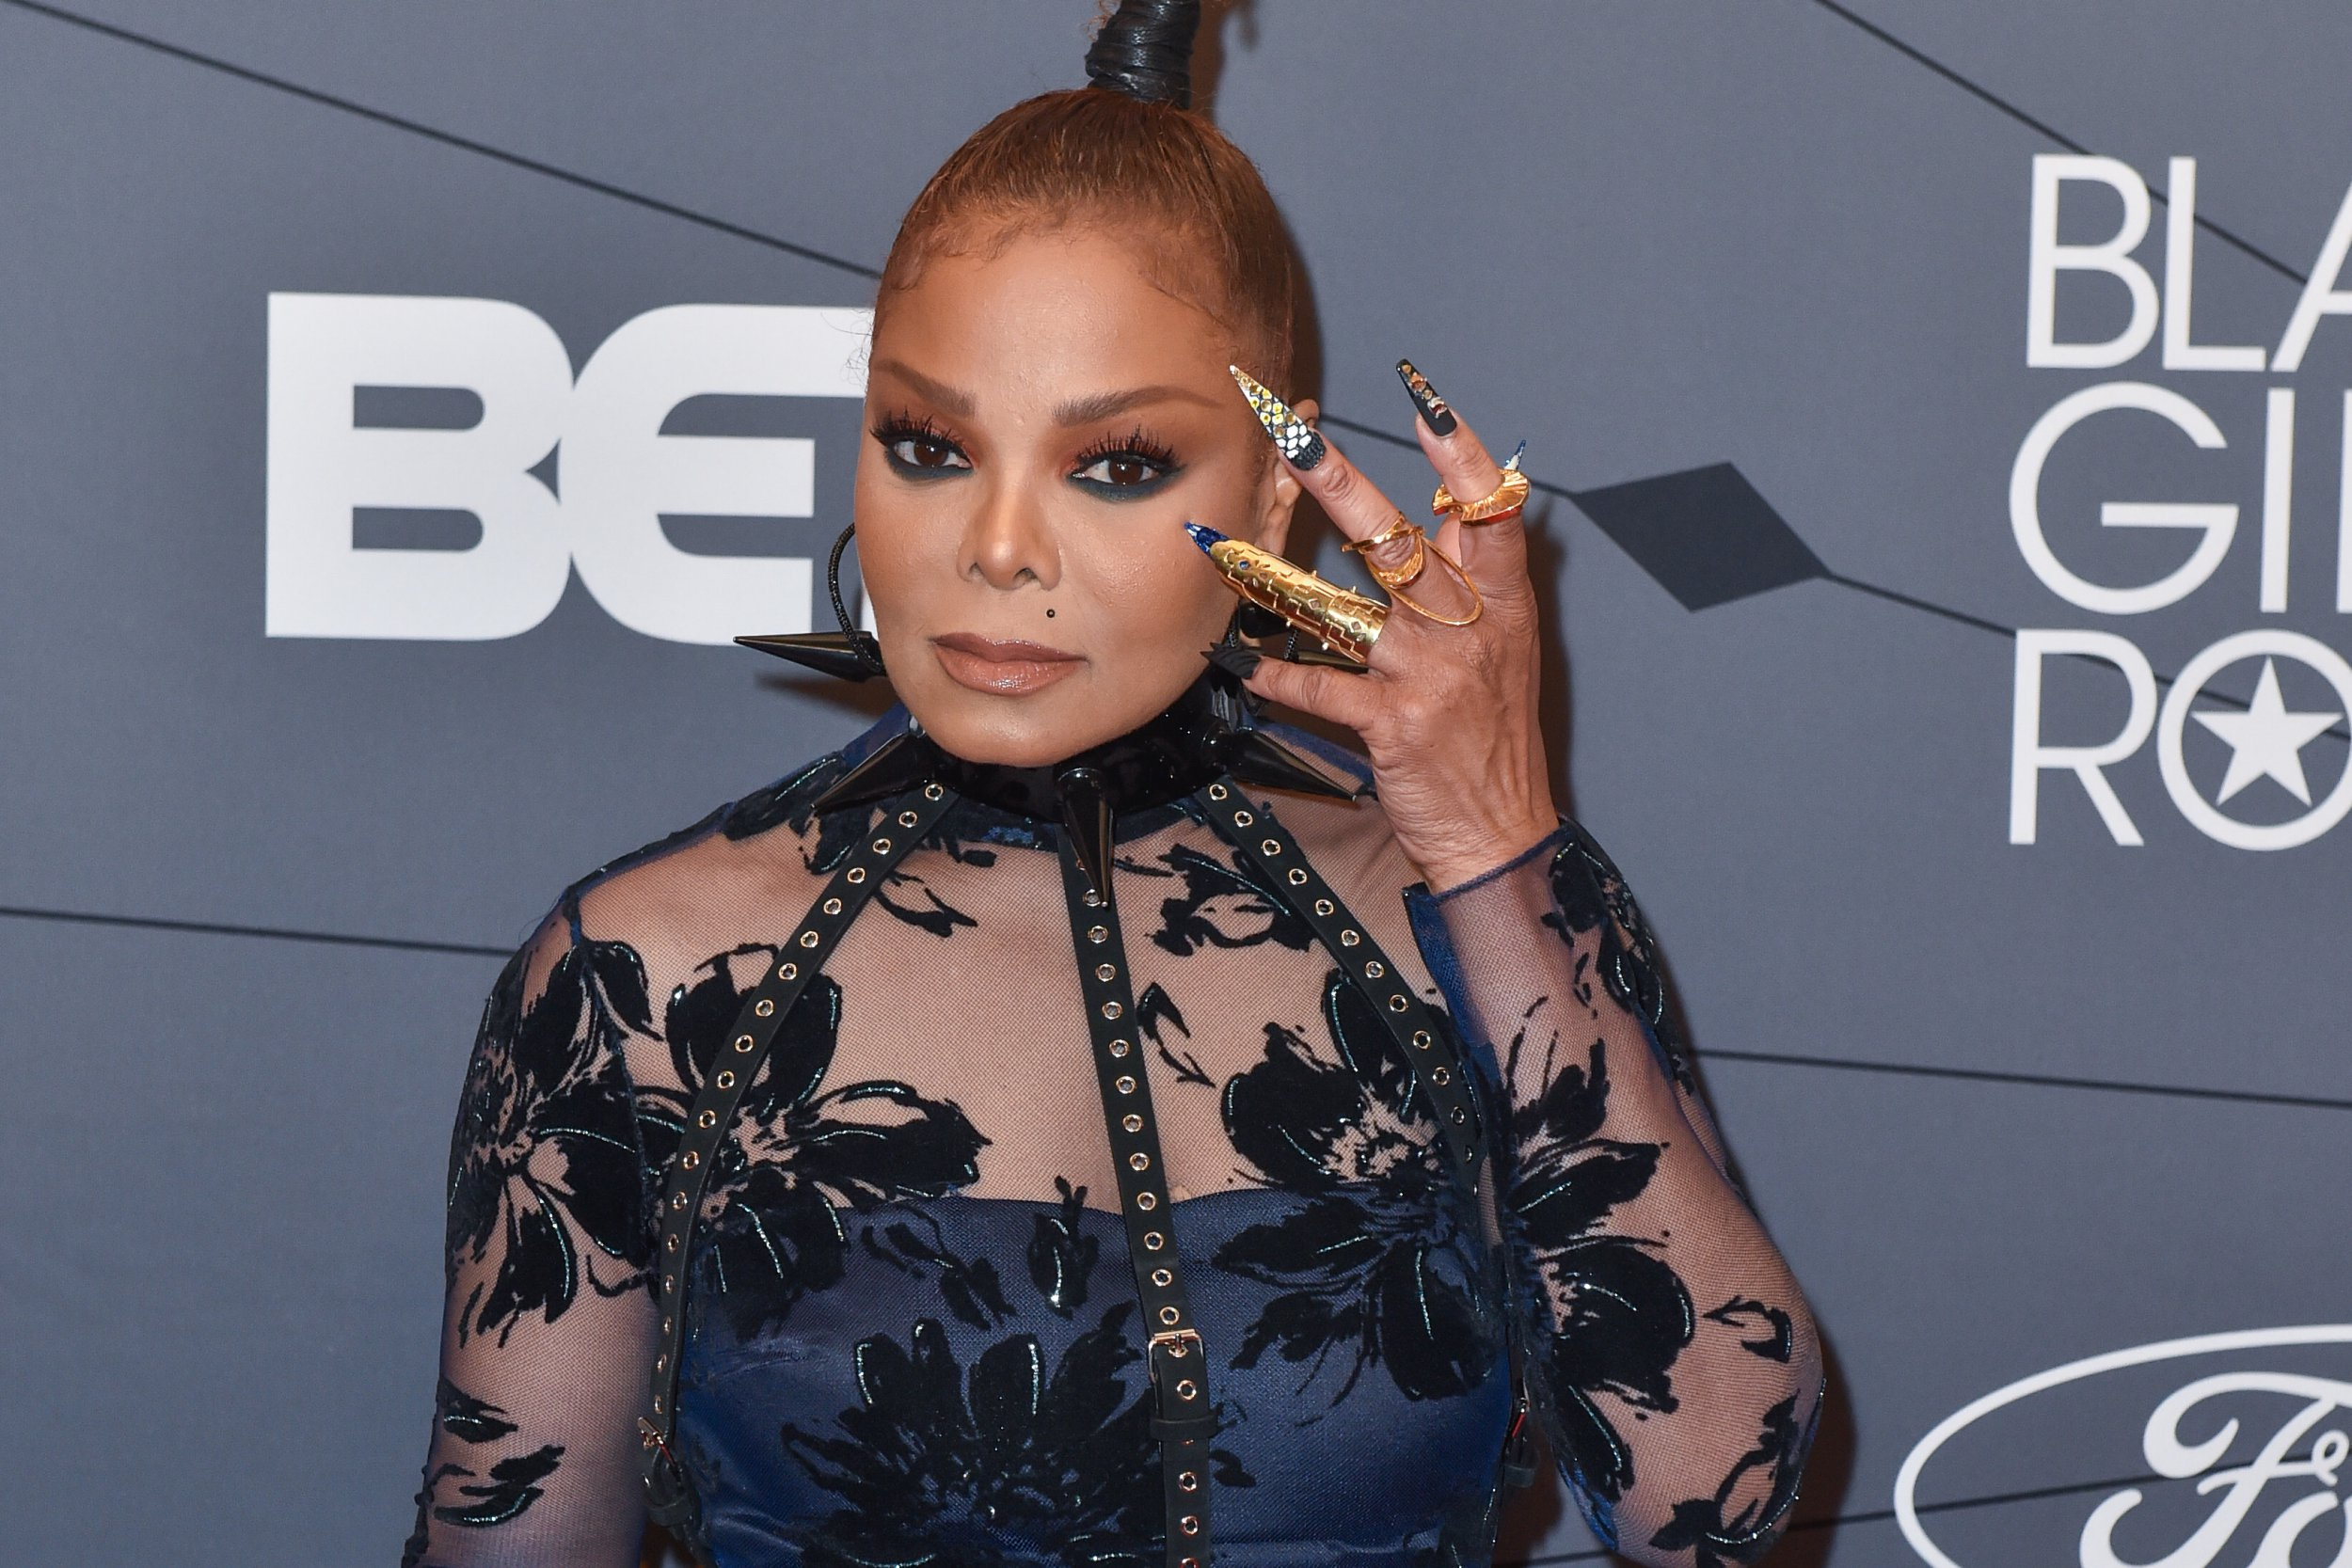 NEWARK, NJ - AUGUST 26: Singer Janet Jackson attends the Black Girls Rock! Red Carpet at the New Jersey Performing Arts Center on August 26, 2018 in Newark, New Jersey. (Photo by Aaron J. Thornton/FilmMagic)